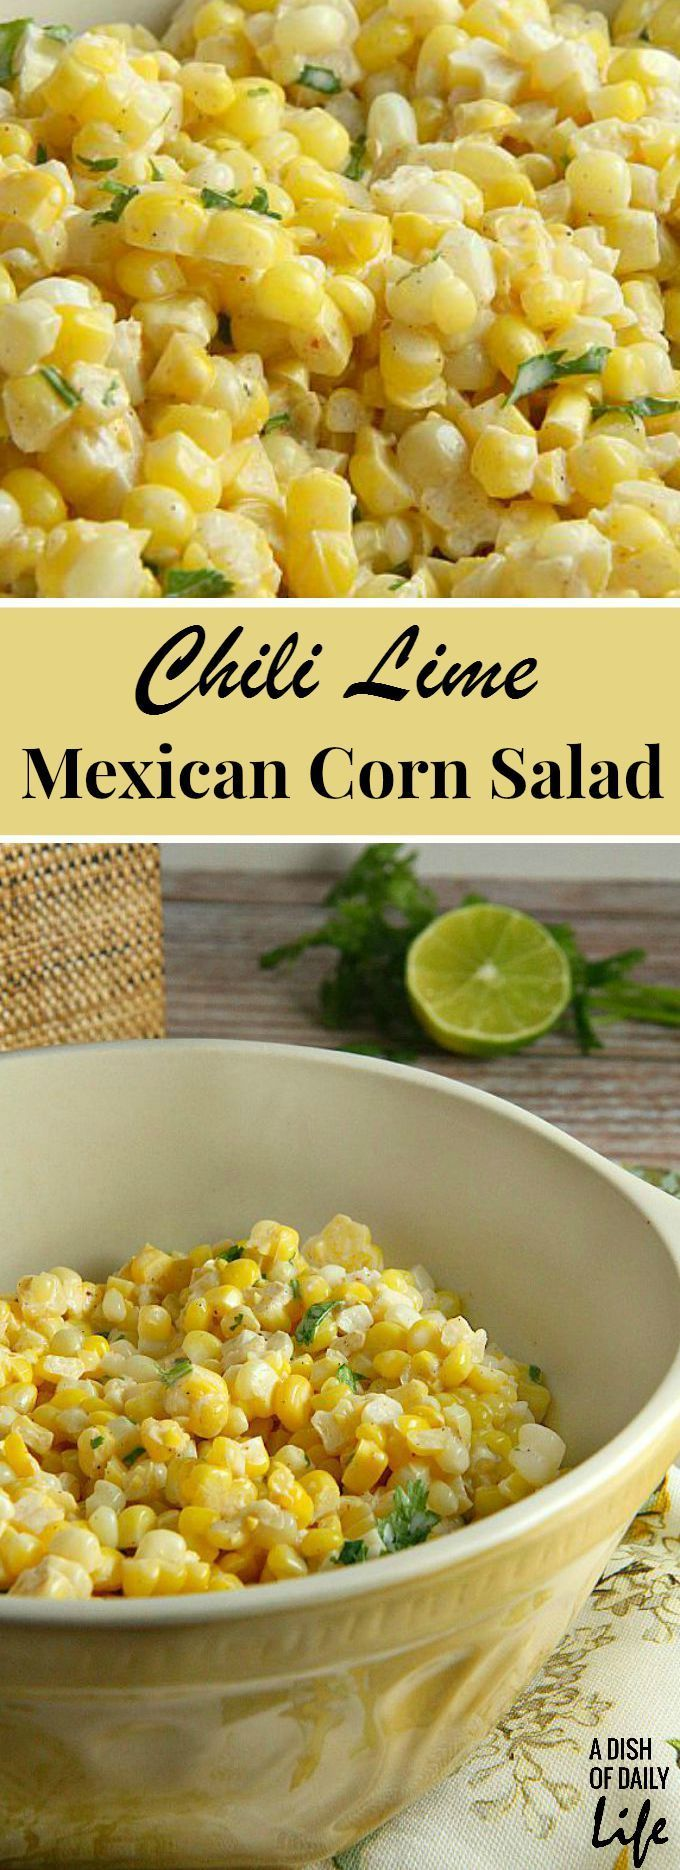 as salad  can your dish minute gel delicious corn  Salad for on into or simple Chili Lime sale lyte be a Like dinner This and cookout  any asics an it used or Turn side Corn next Mexican street either Mexican    Mexican appetizer